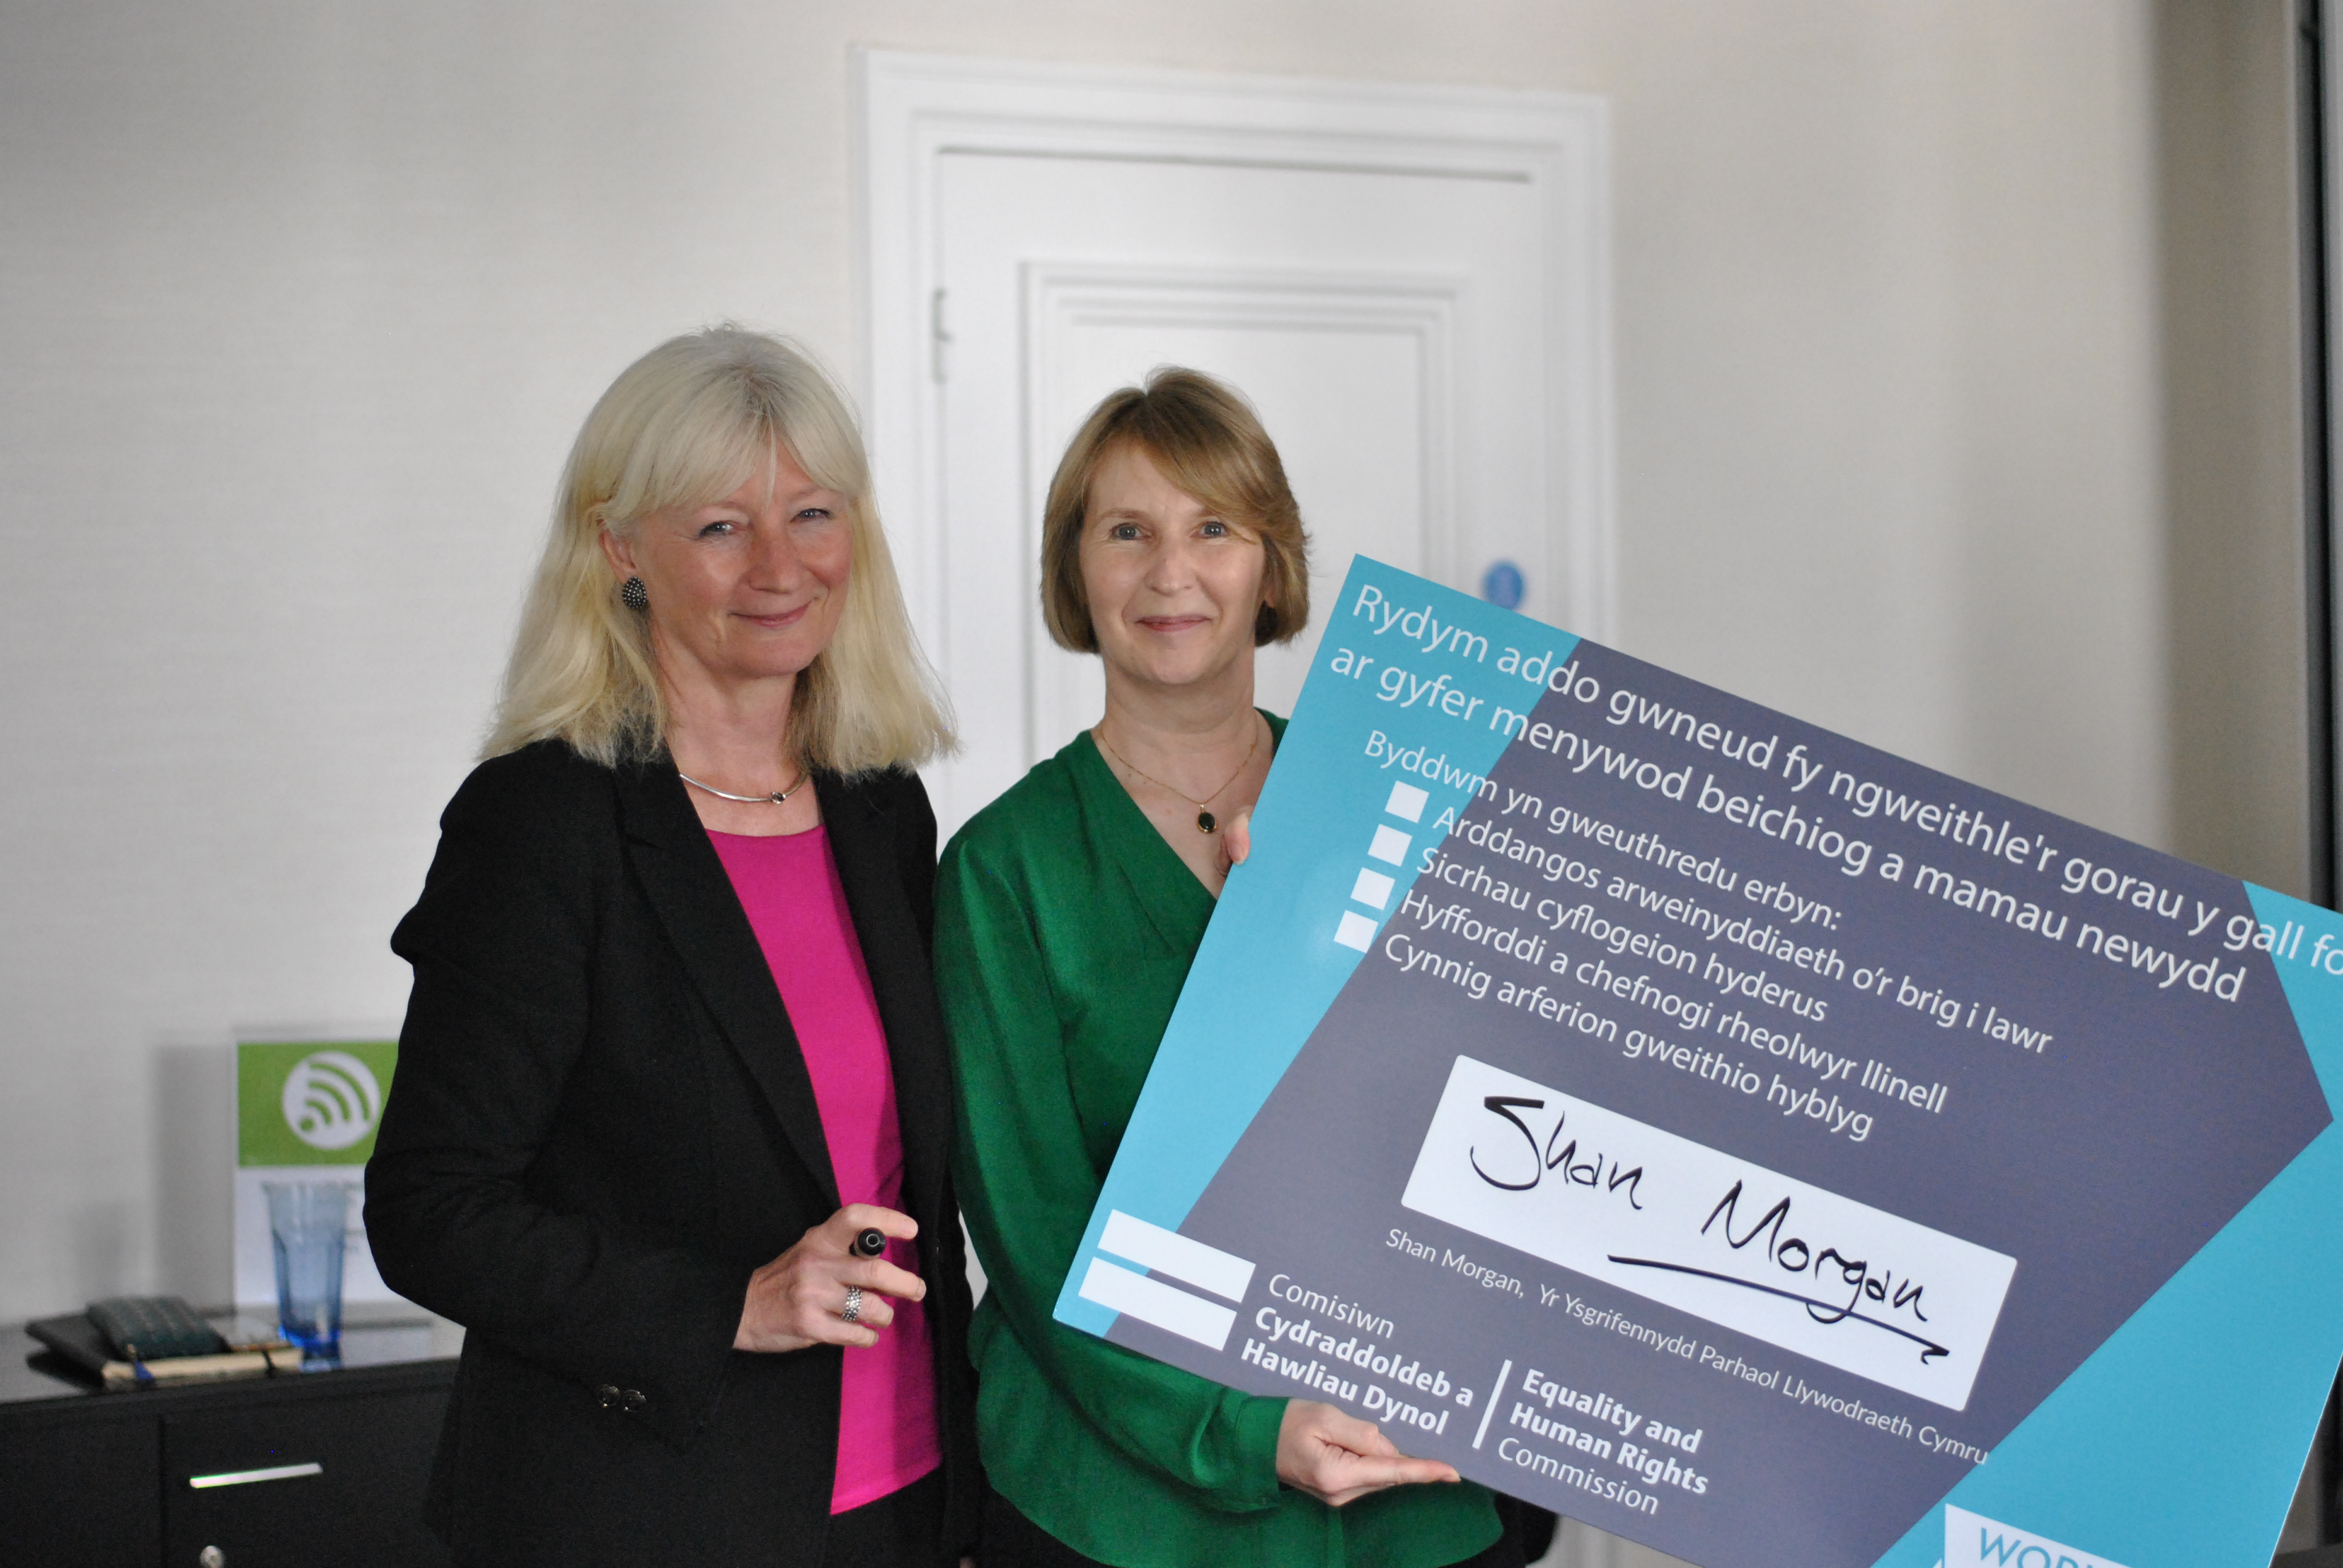 Shan Morgan signing the Working Forward pledge with June Milligan